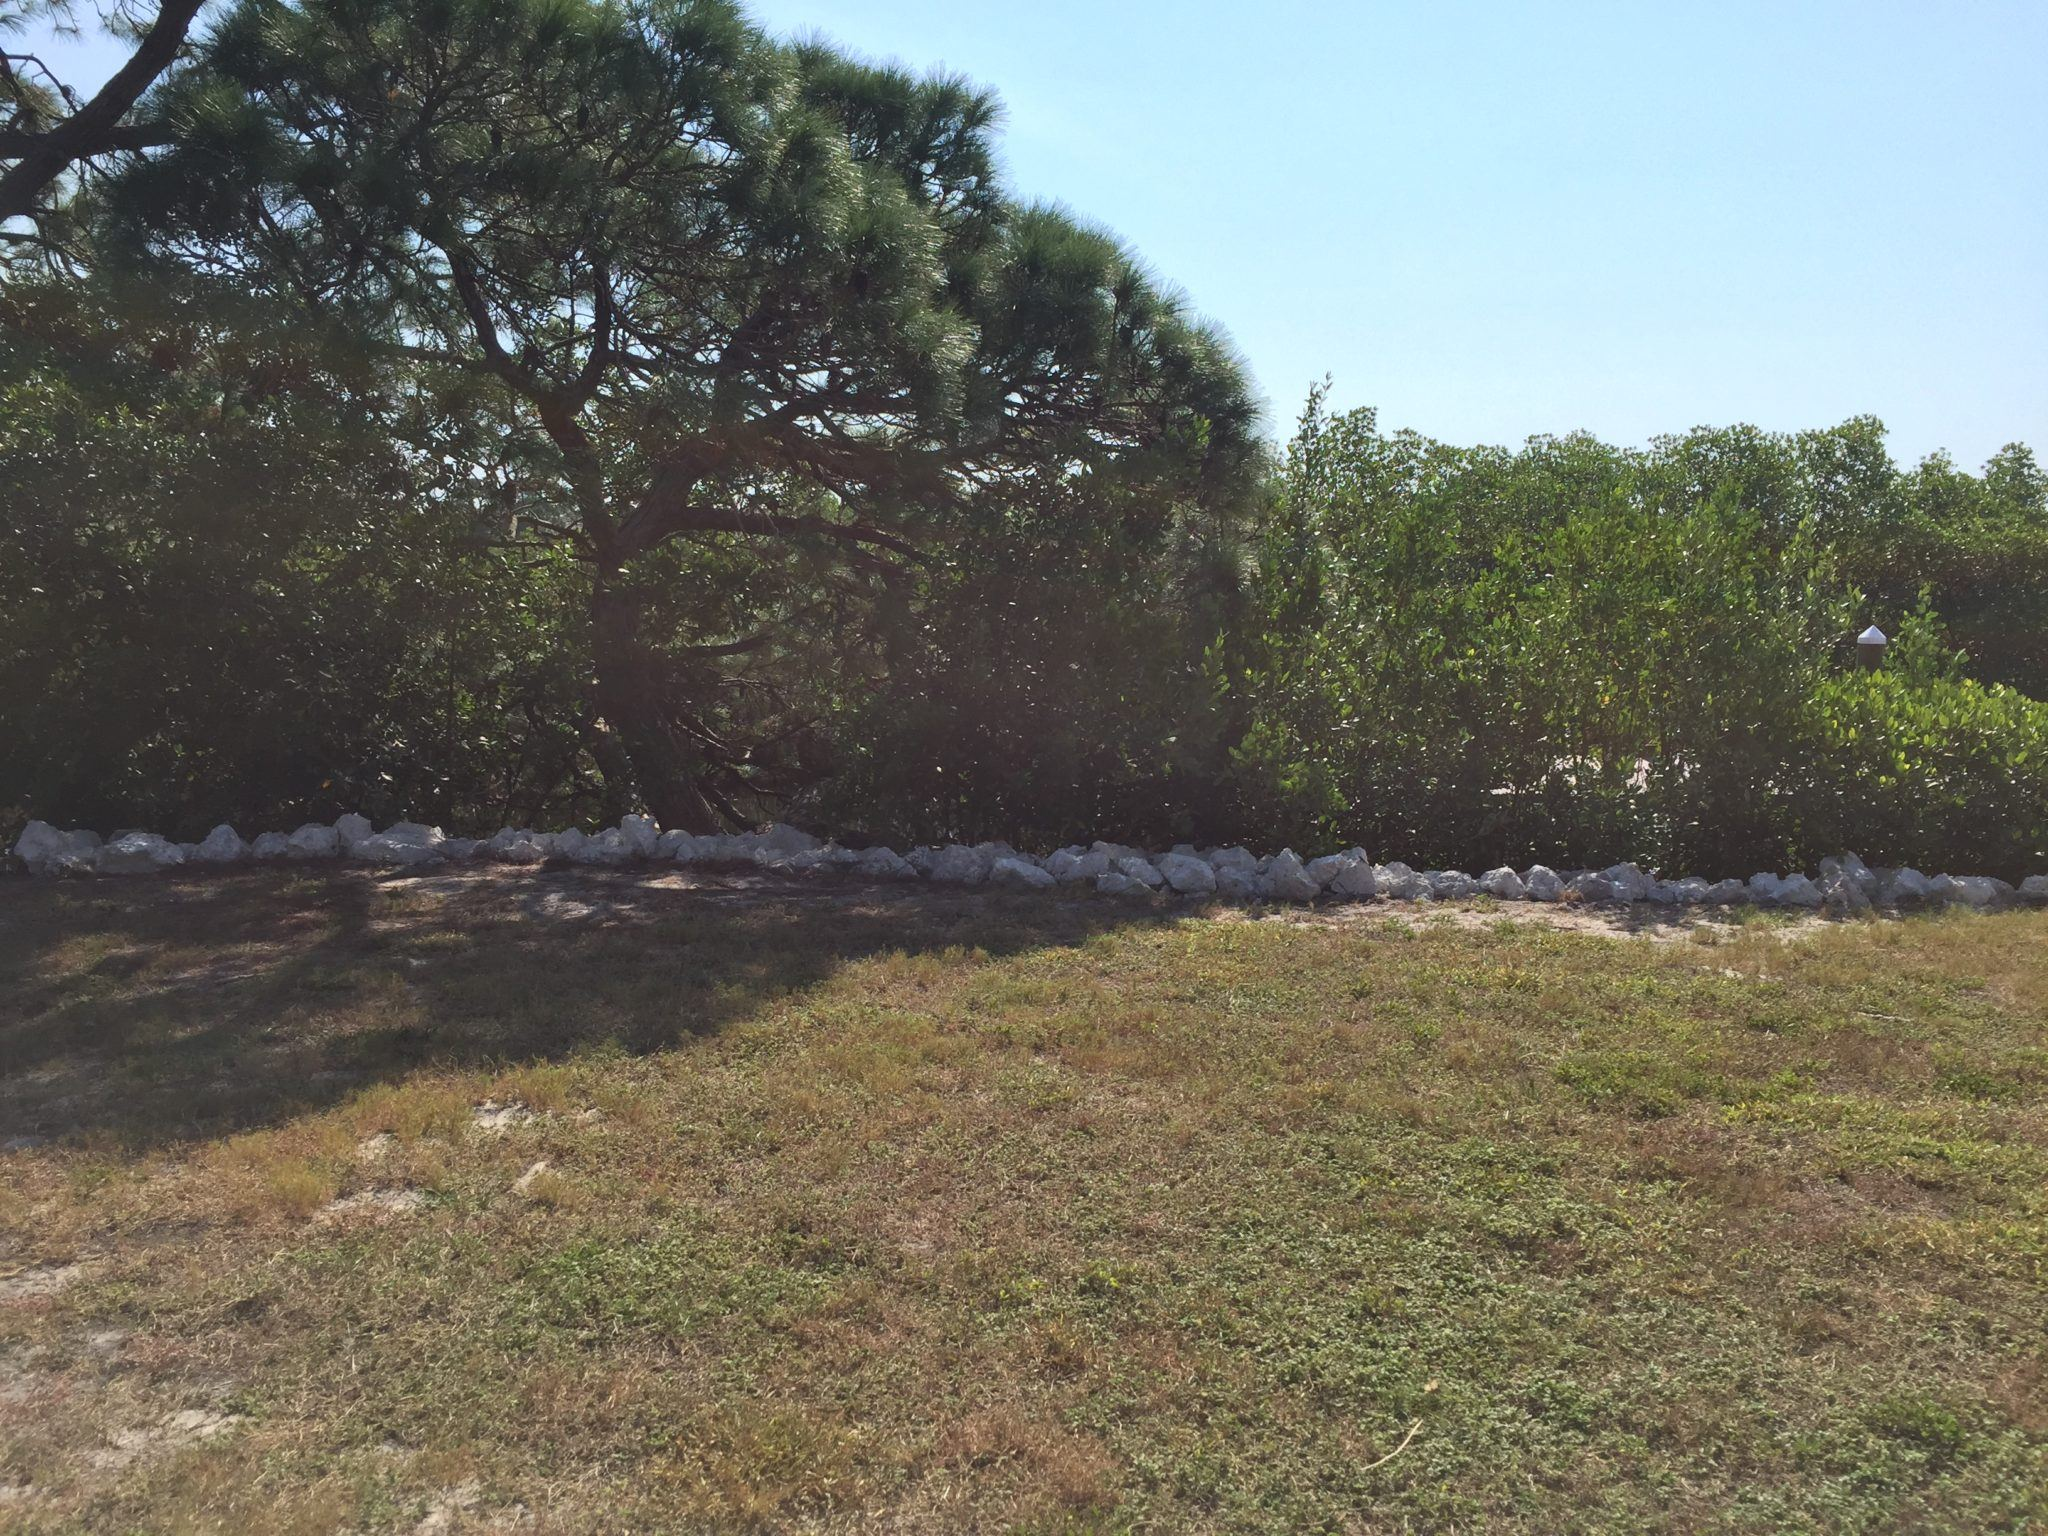 Rip rap limestone rock placed along shoreline for stabilization with mangroves and large tree behind the rip rap